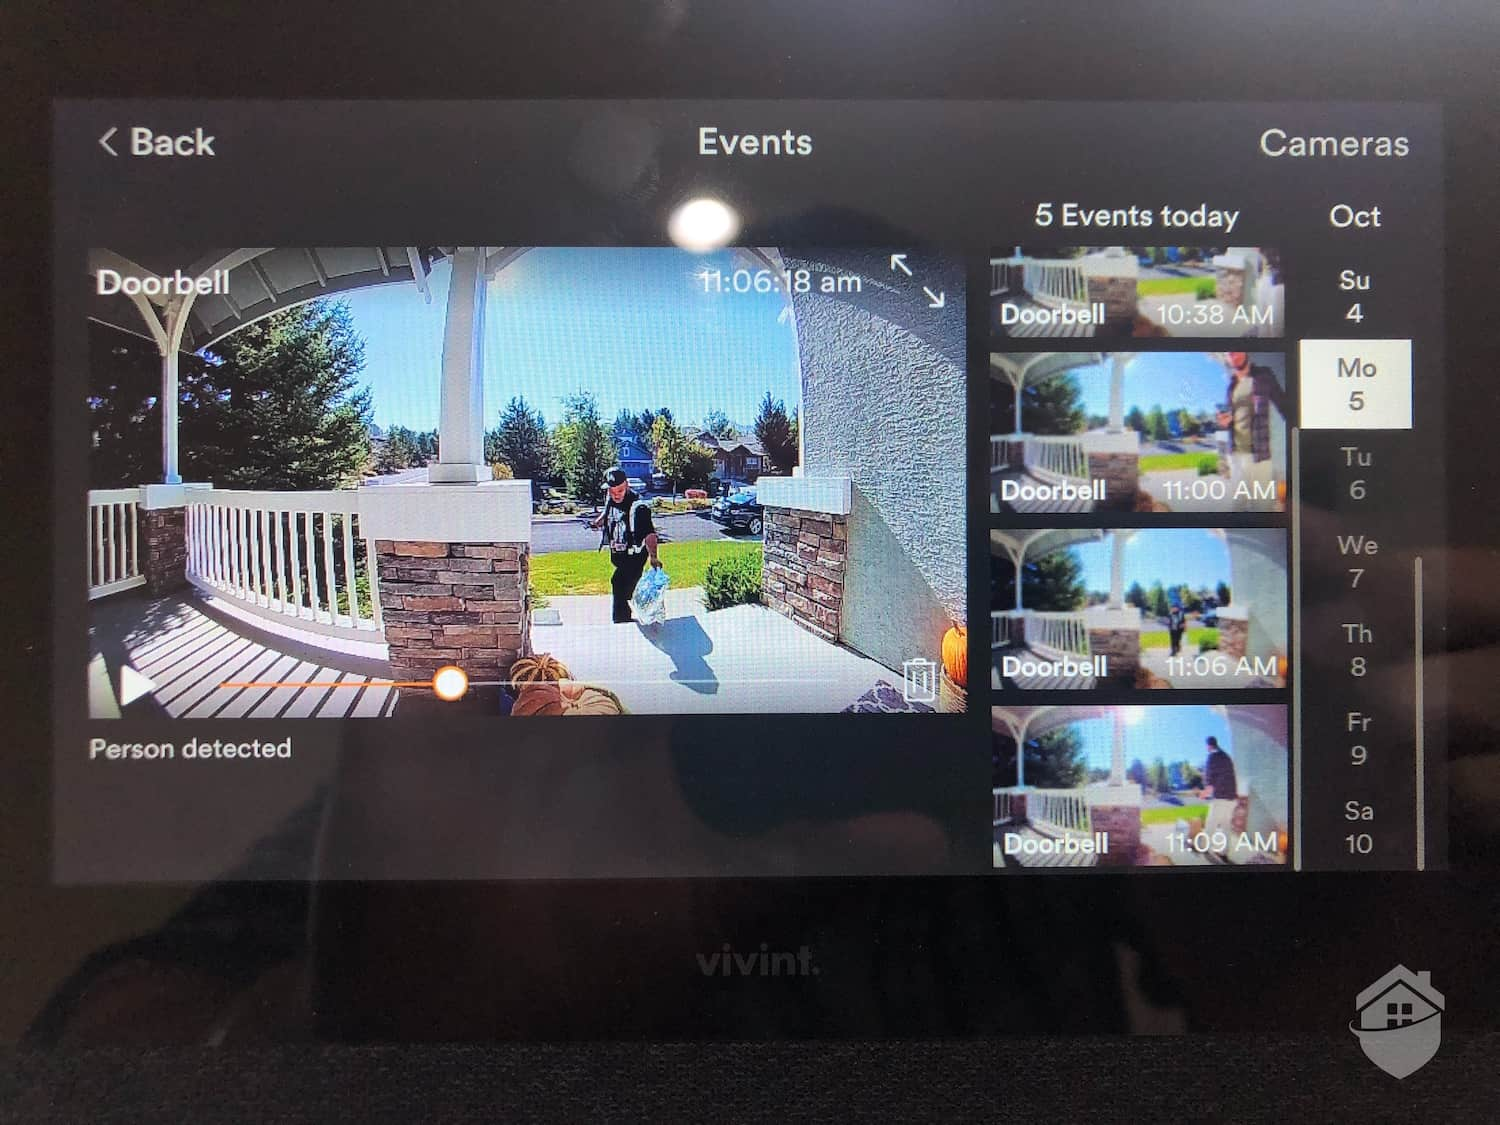 Live Video from the Vivint Doorbell, Viewed on the Smart Hub